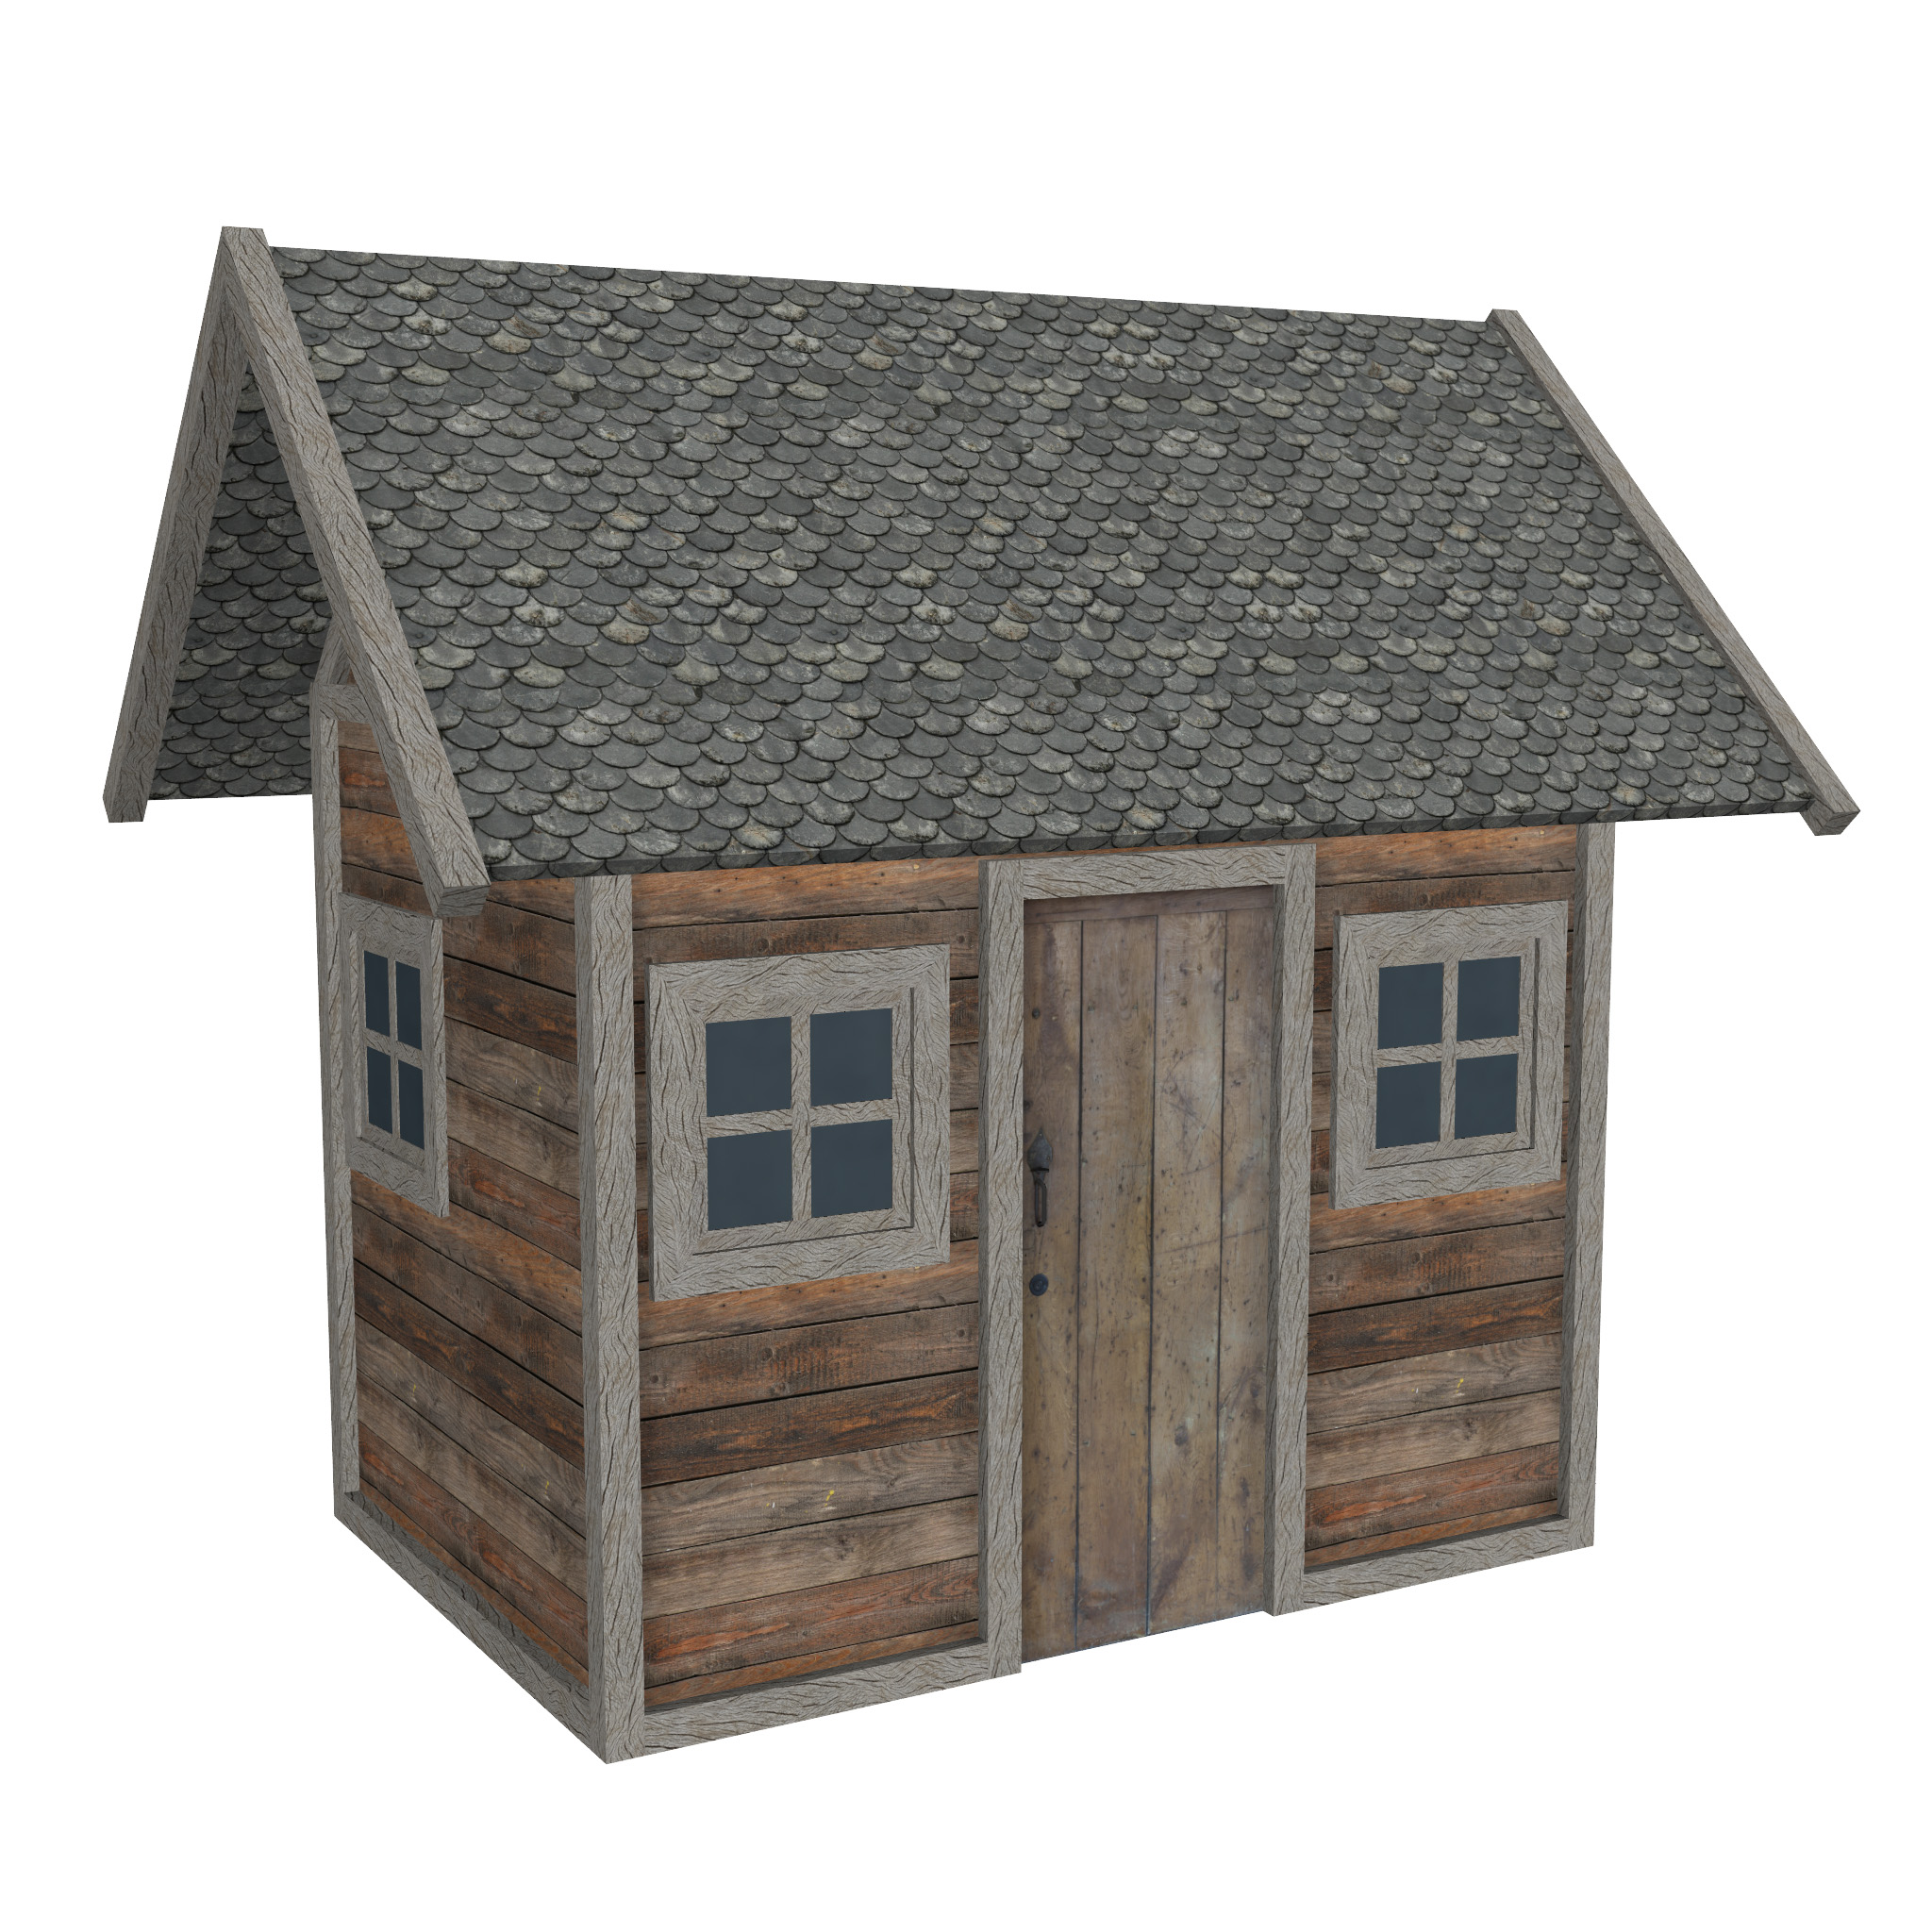 modular wood house set 3d model fbx ma mb 271457